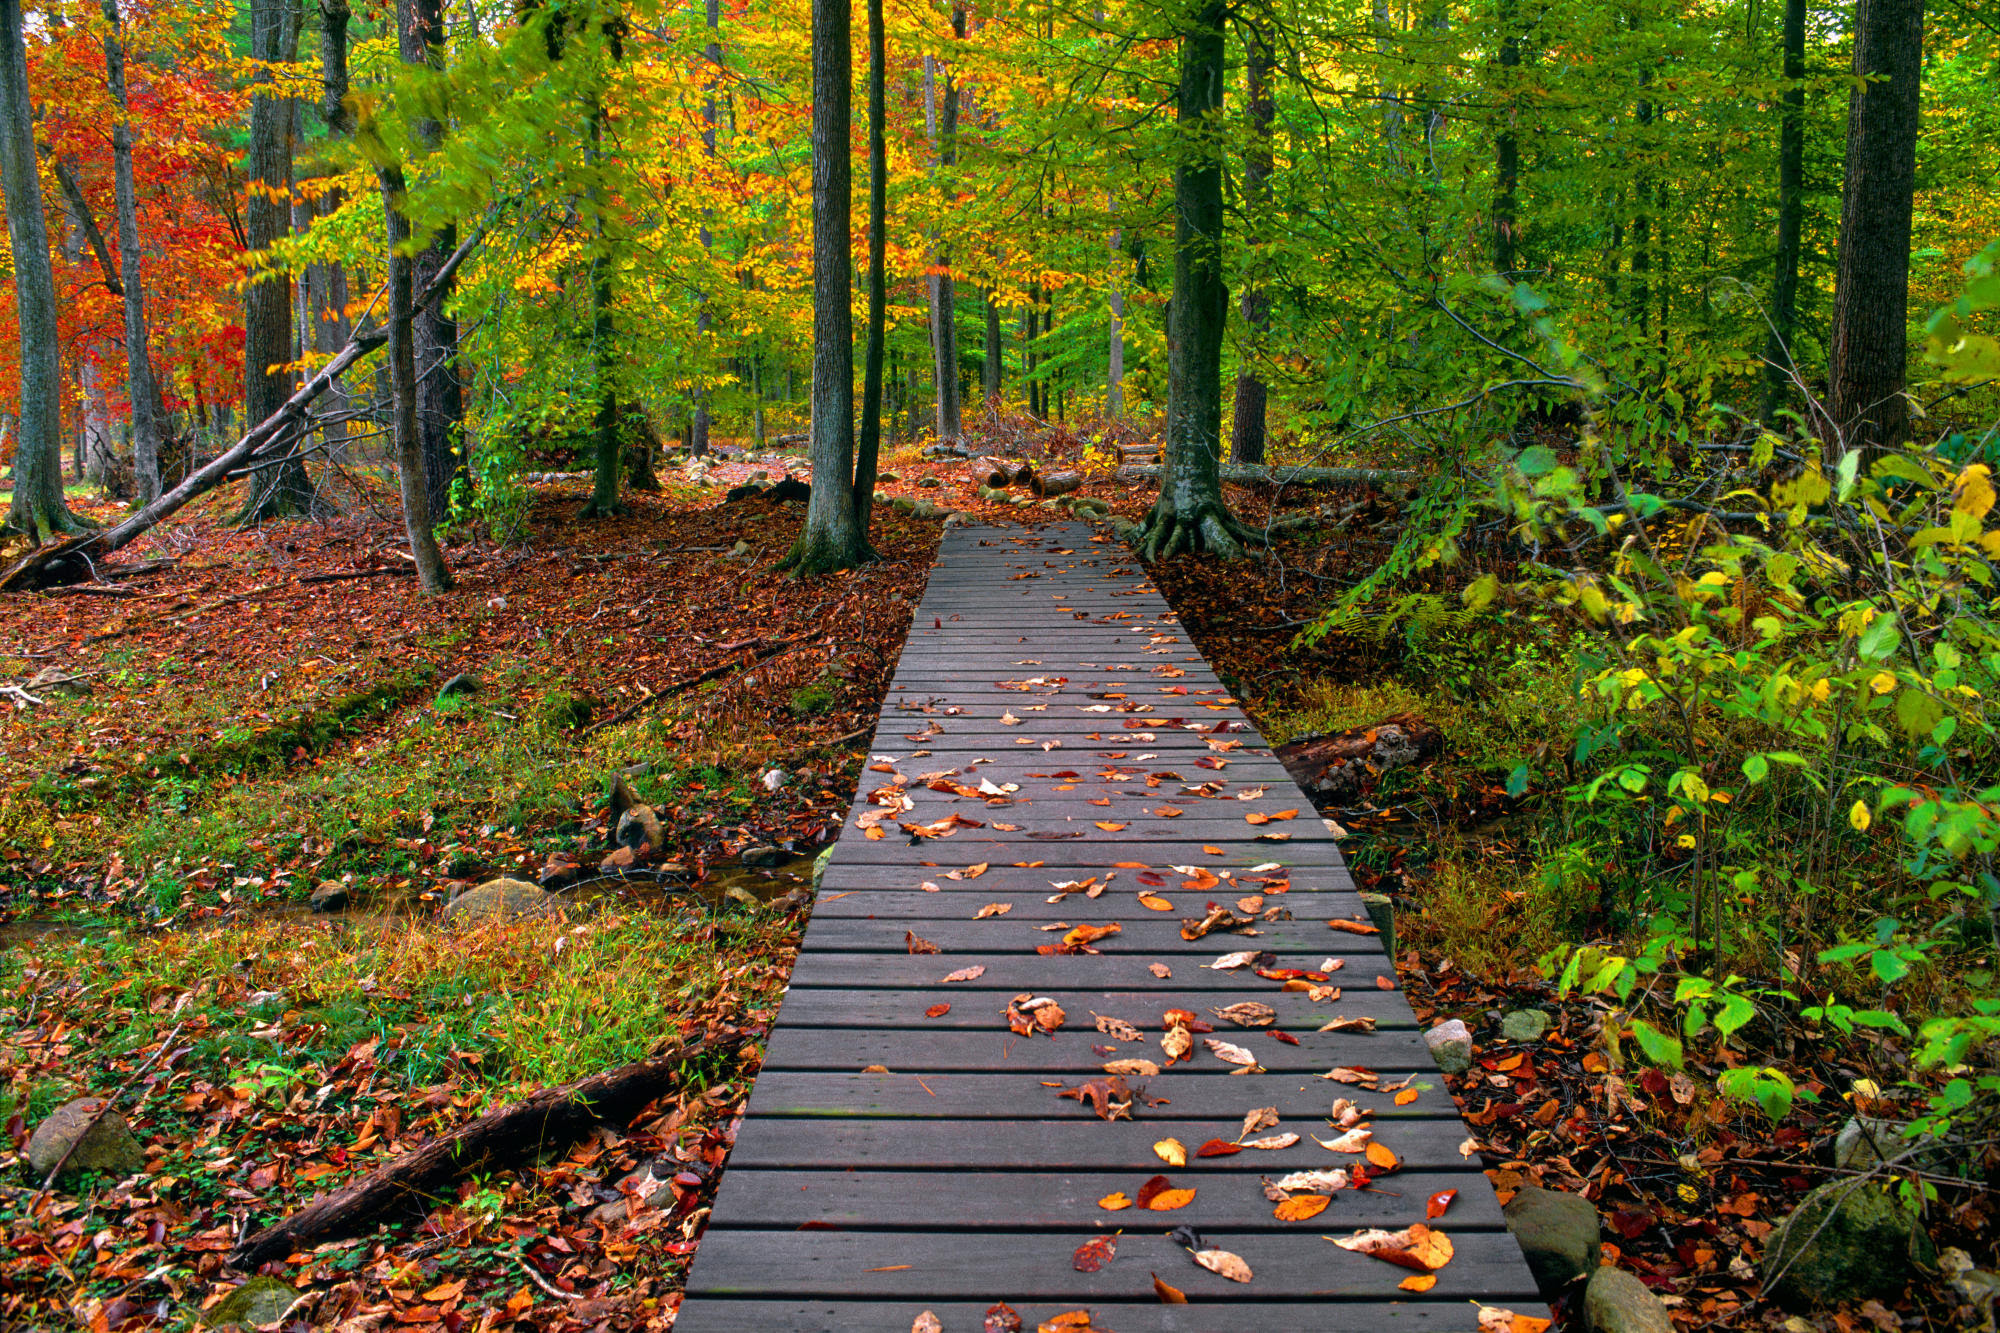 fall  nature  backgrounds  21319 hd  wallpapers  MAPS